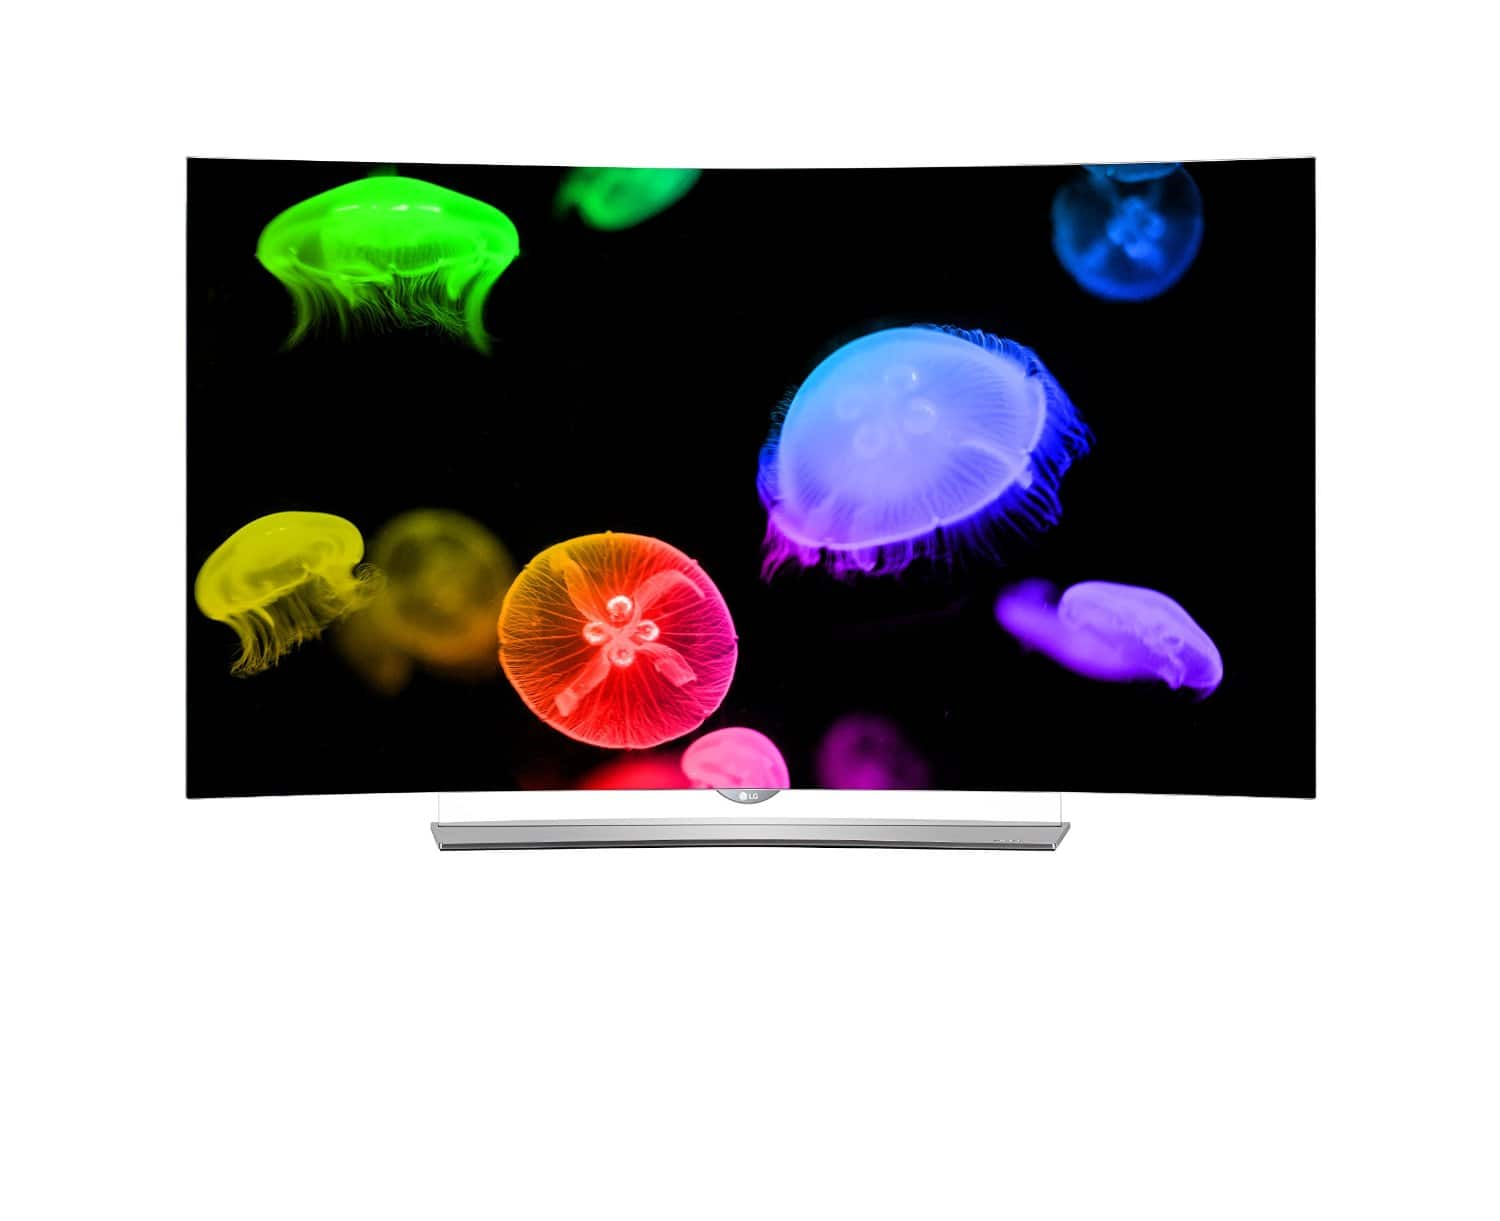 LG 65EG9600 OLED for $3000 @ Amazon